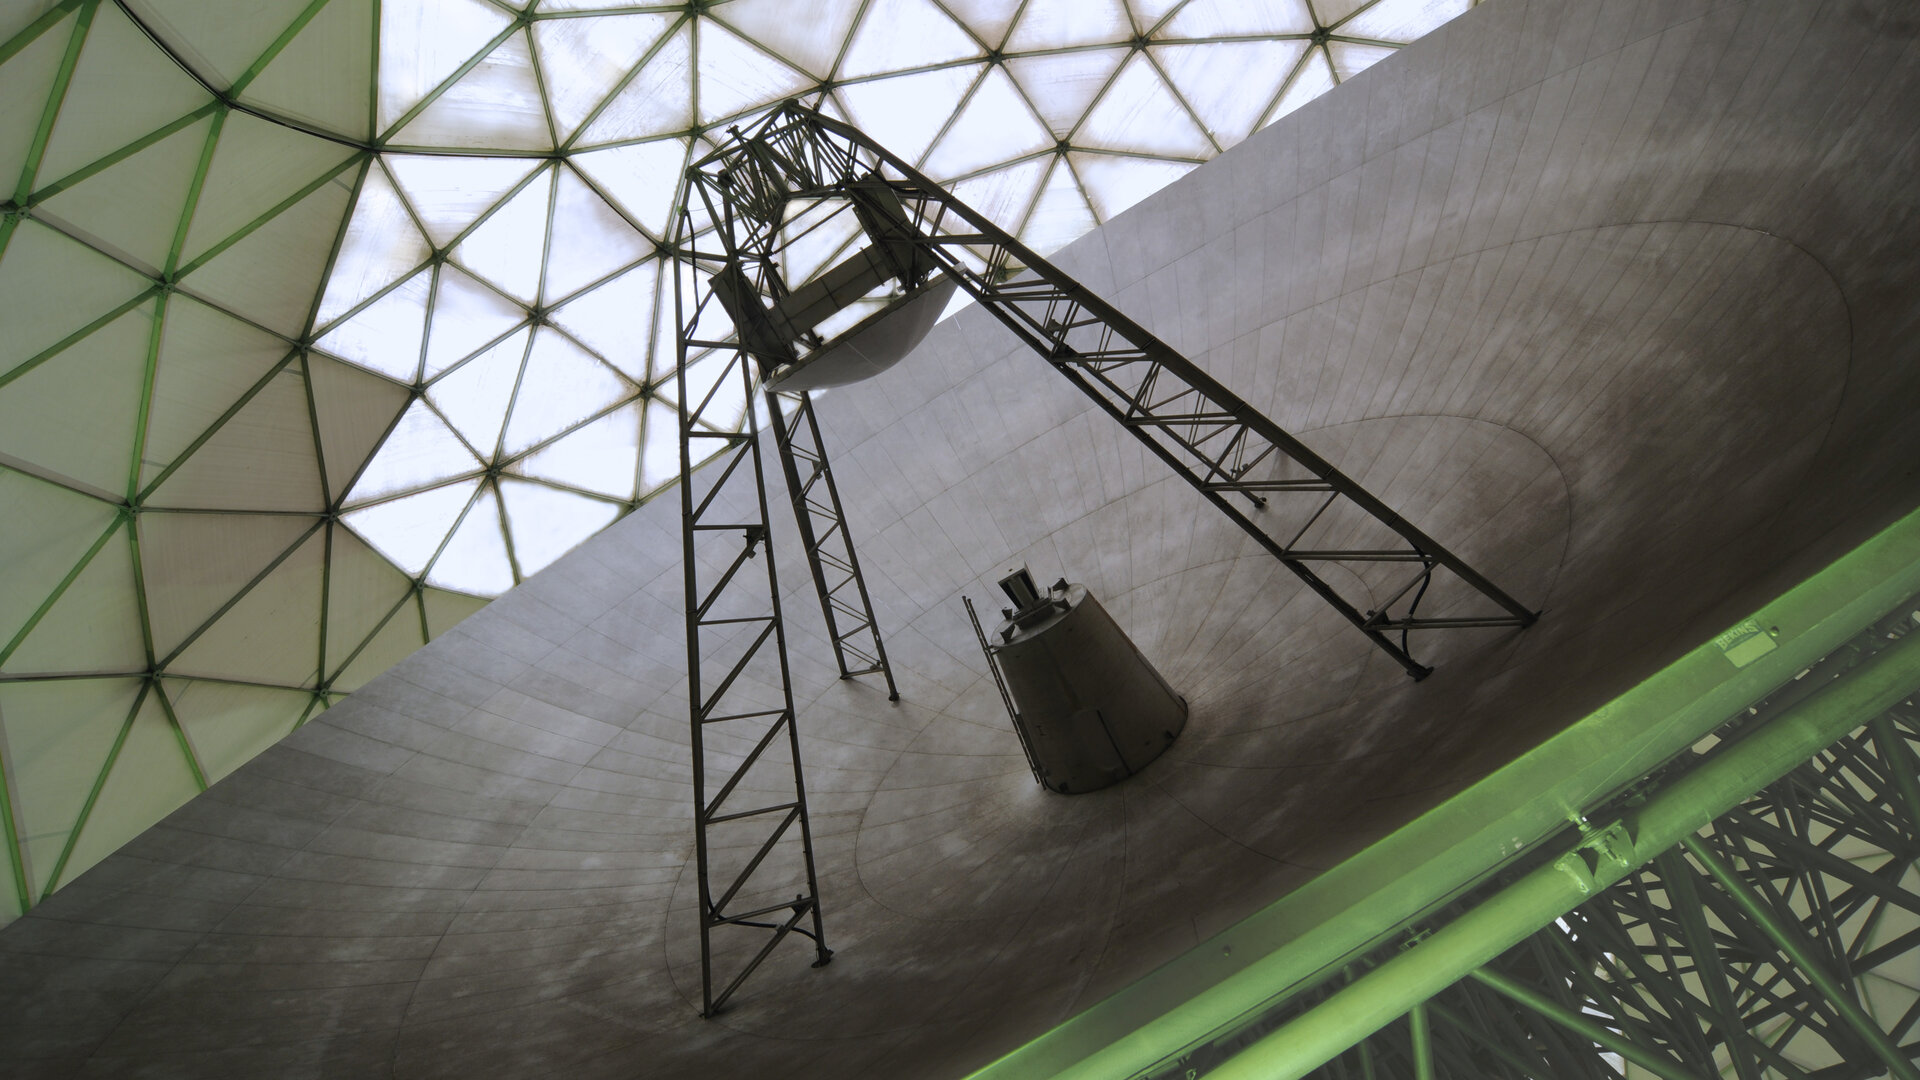 TIRA radar: under the radome